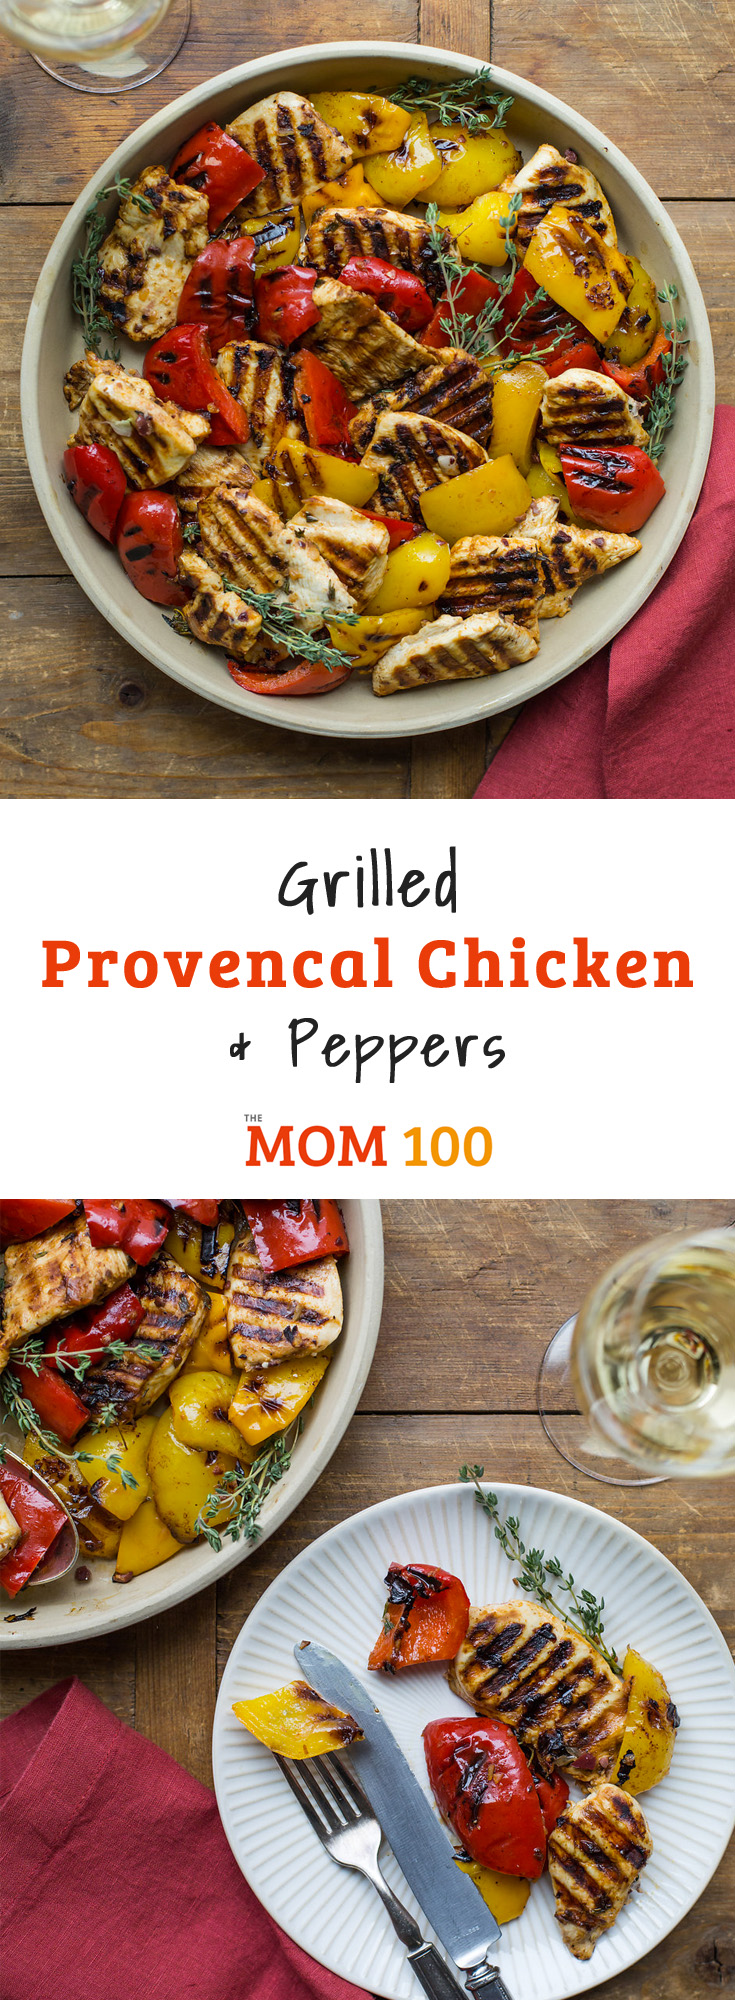 Grilled Provencal Chicken and Peppers. Colorful and gorgeous and flavorful, and very healthful to boot. A lovely way to connect with your grill.